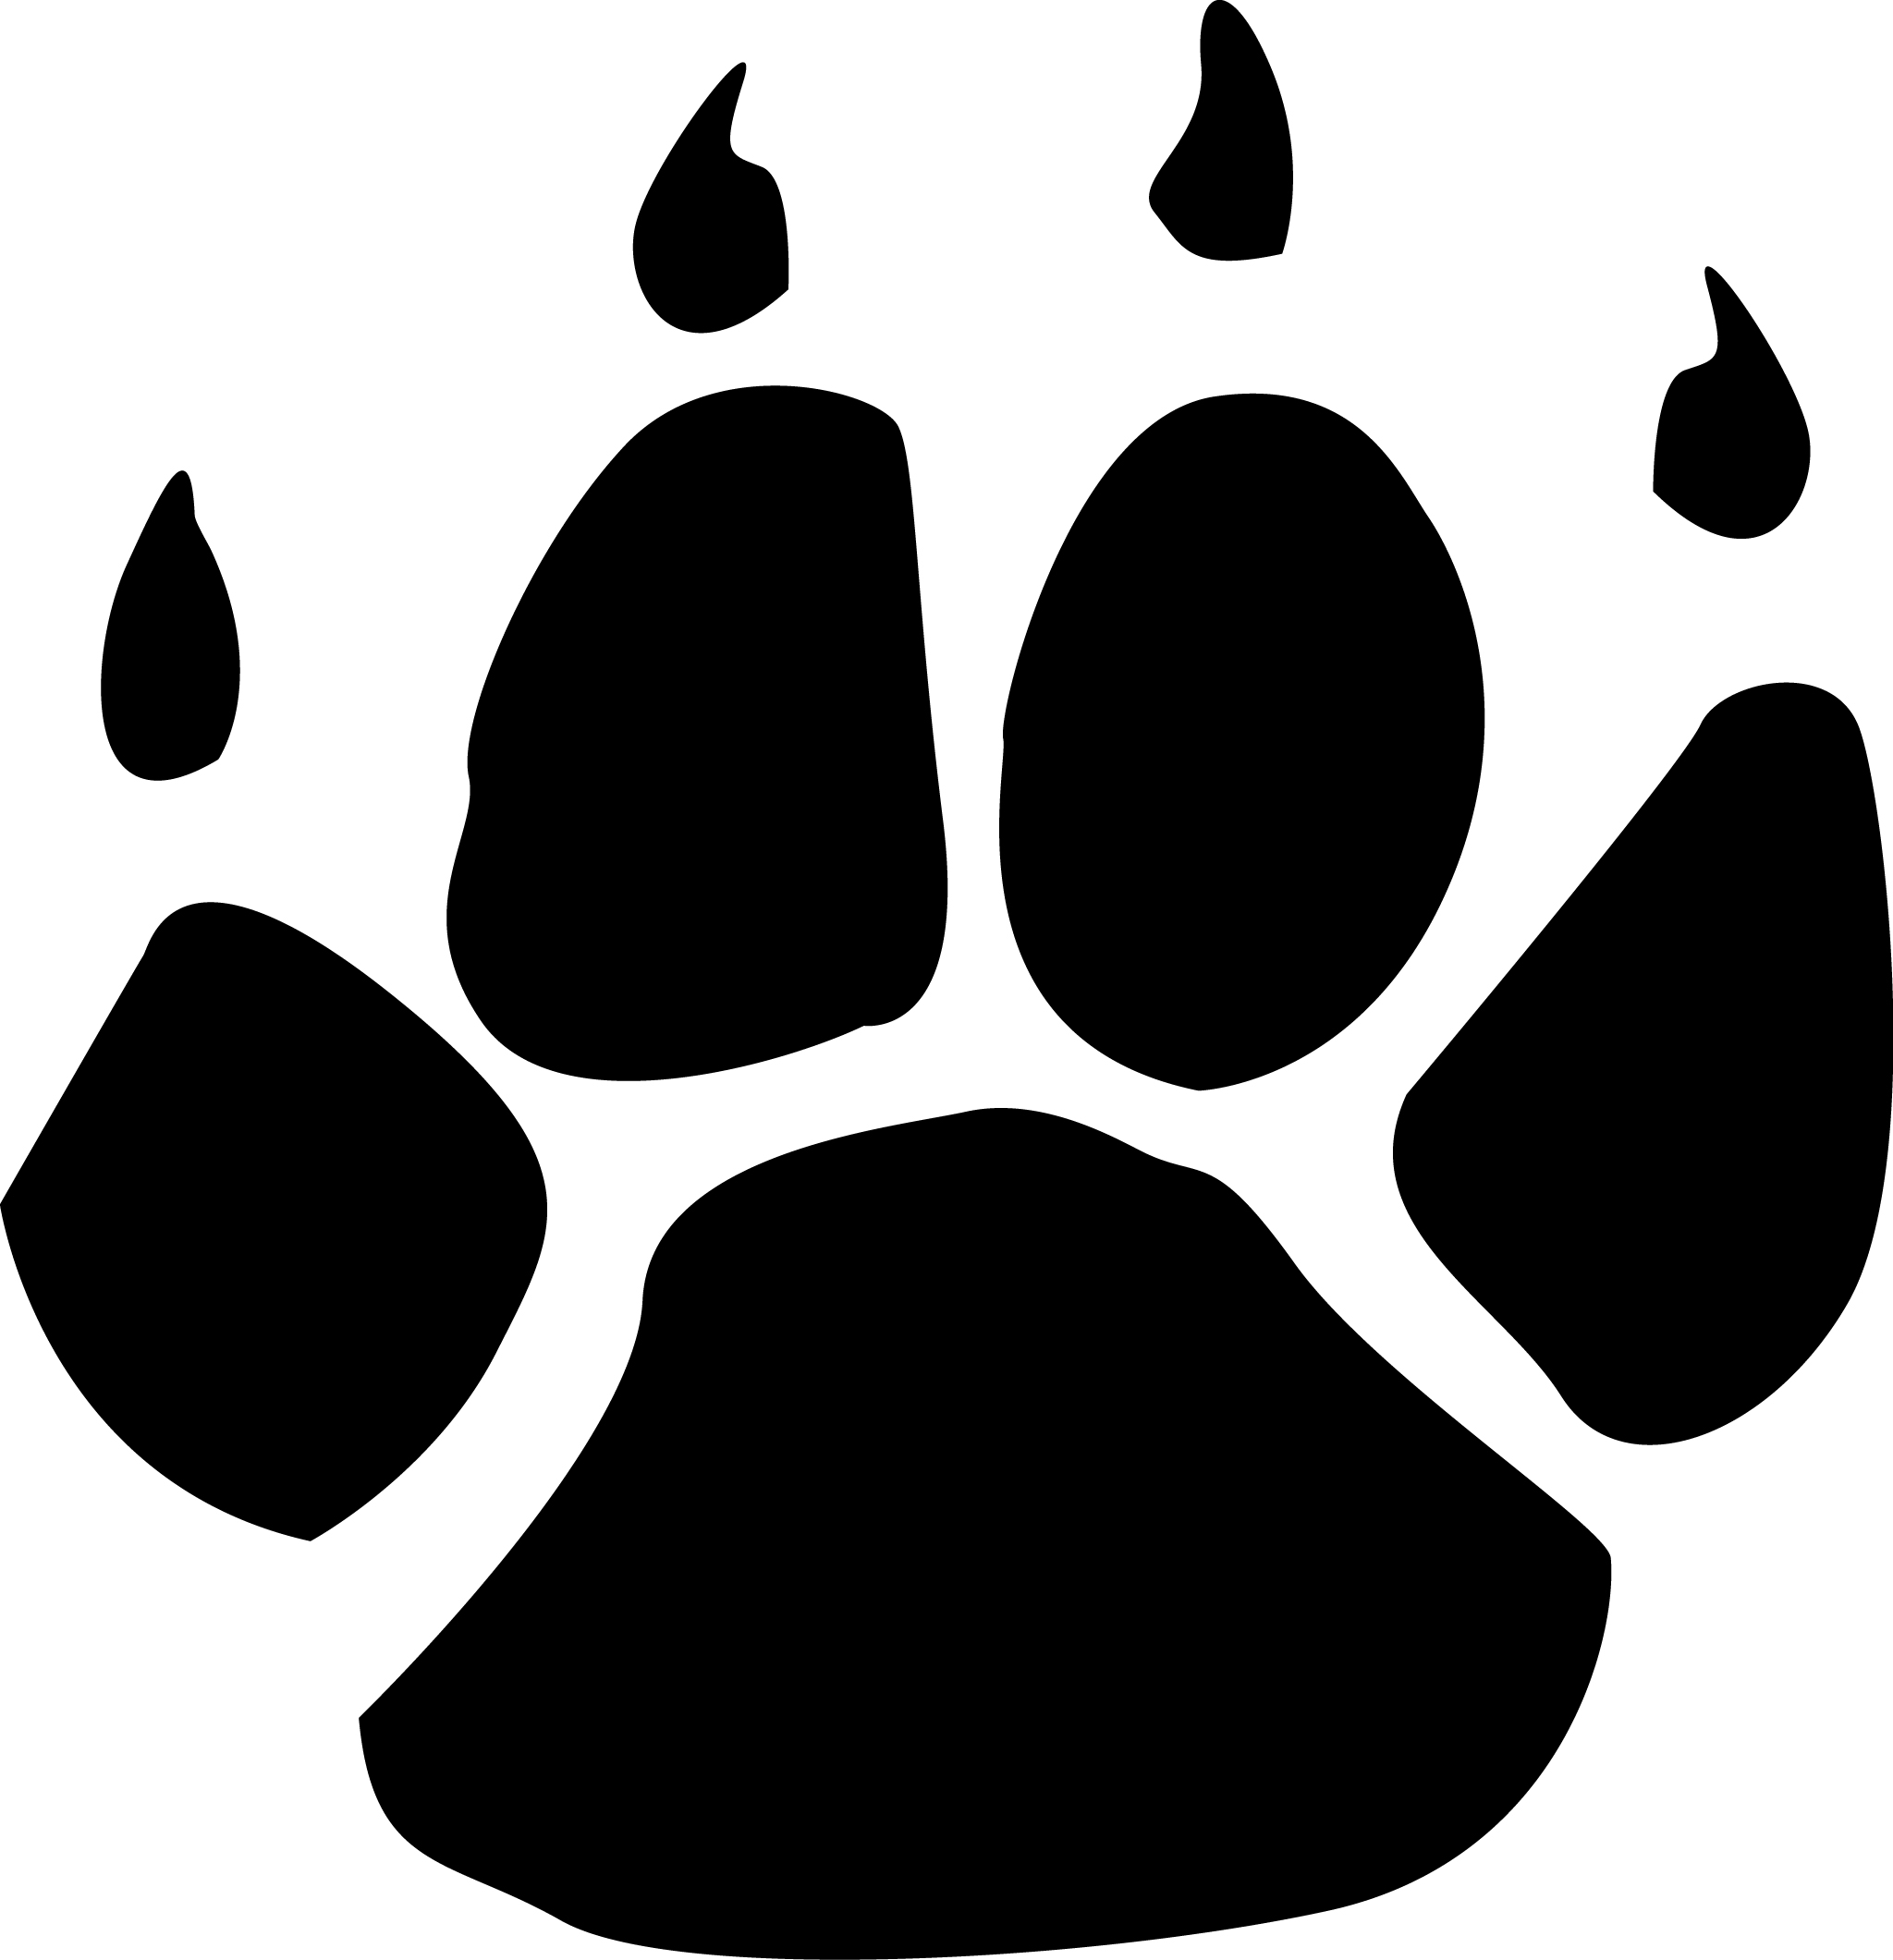 Free Wildcat Paw Png, Download Free Clip Art, Free Clip Art.